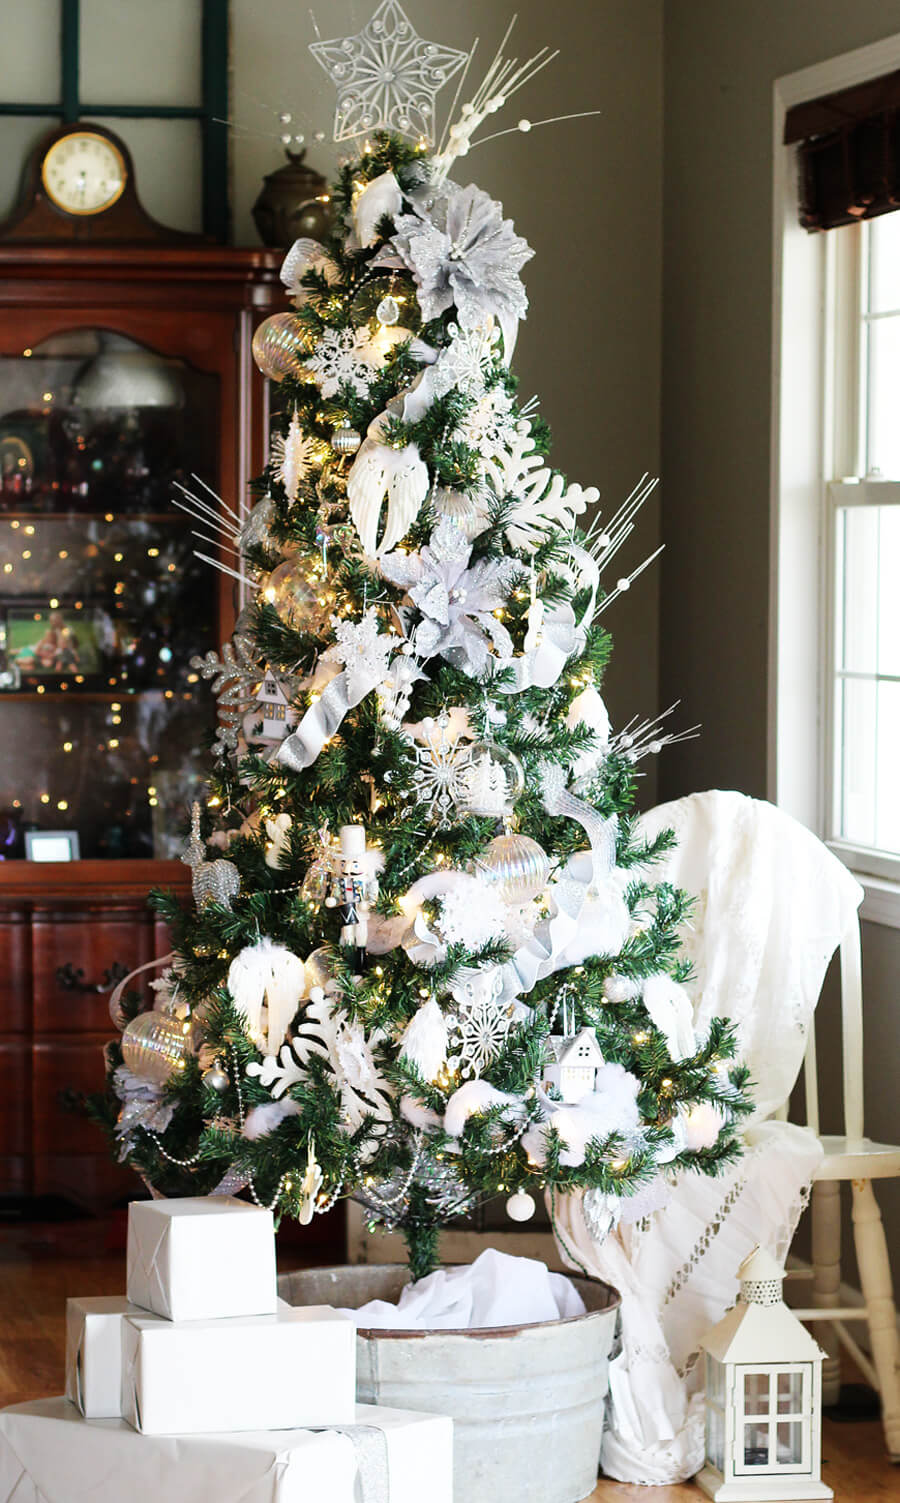 Christmas Tree Decorations Ideas.Winter White Christmas Tree Decorating Ideas Buy This Cook